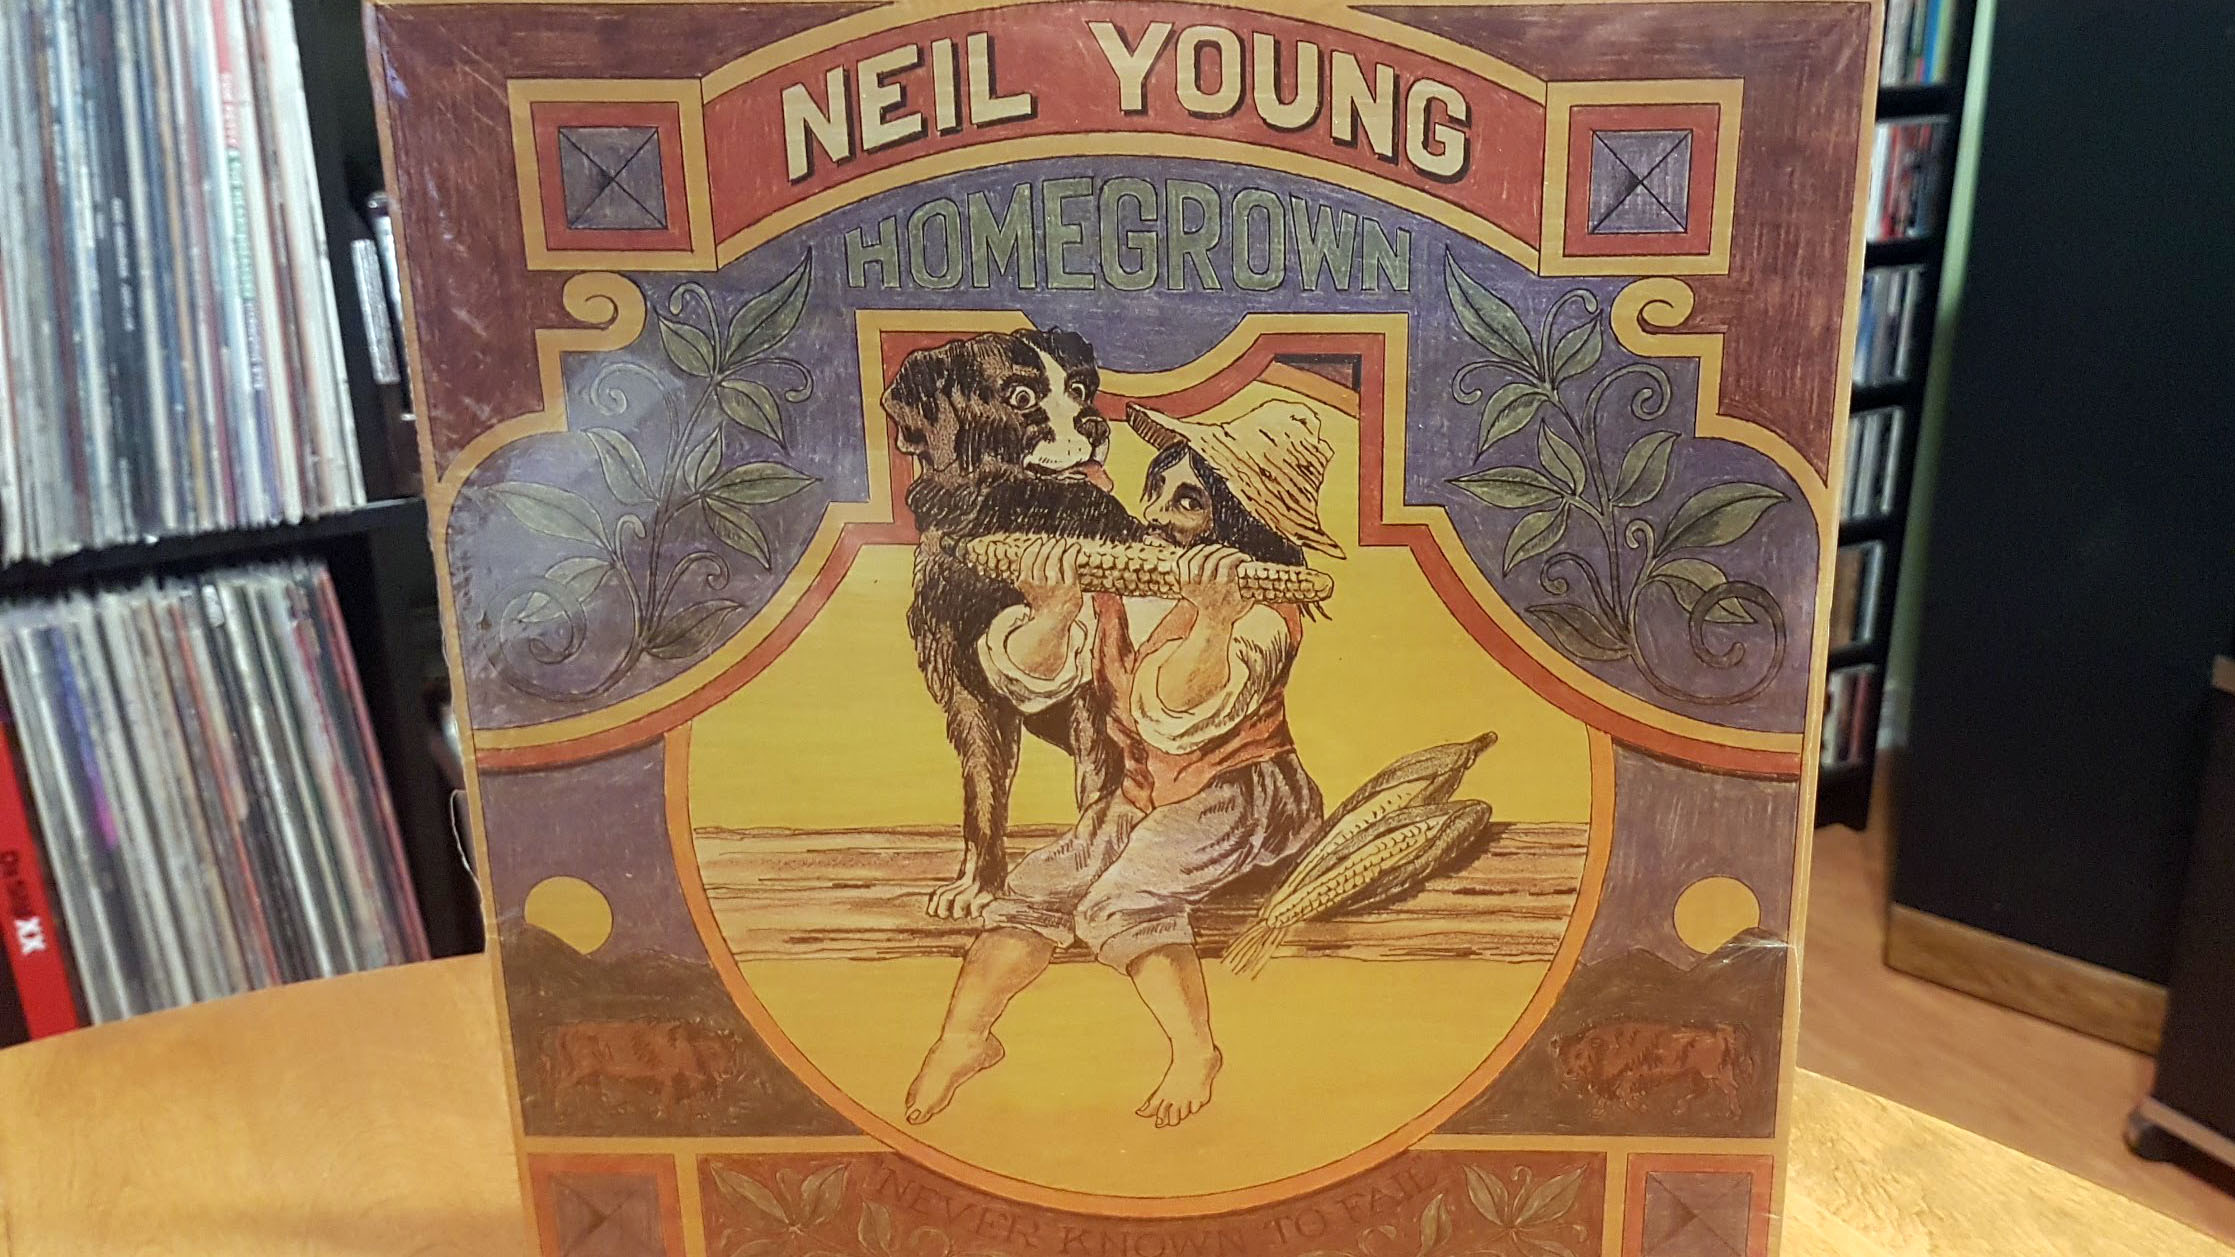 Neil Young homegrown front